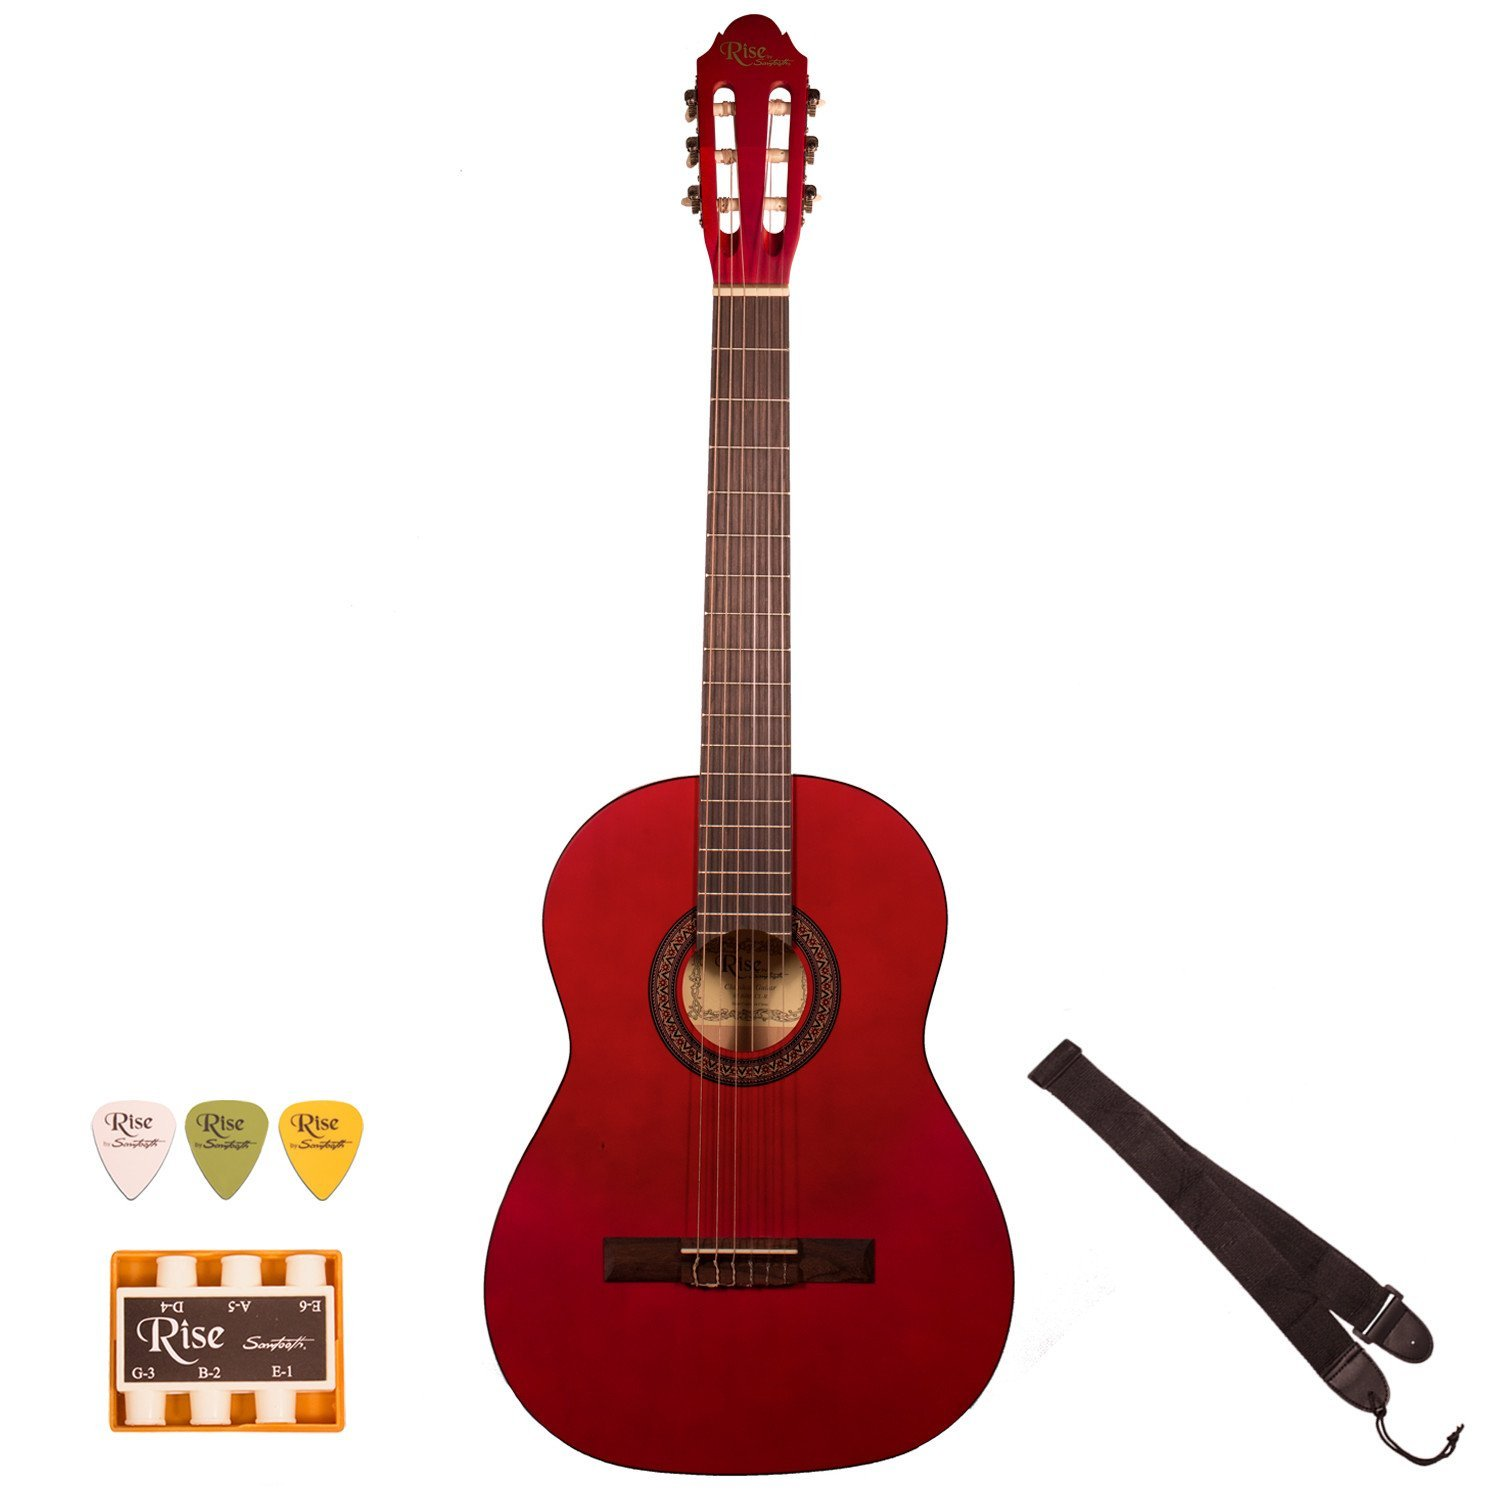 Rise by Sawtooth Full Size Beginner's Acoustic Guitar with Accessories, Satin Red Stain